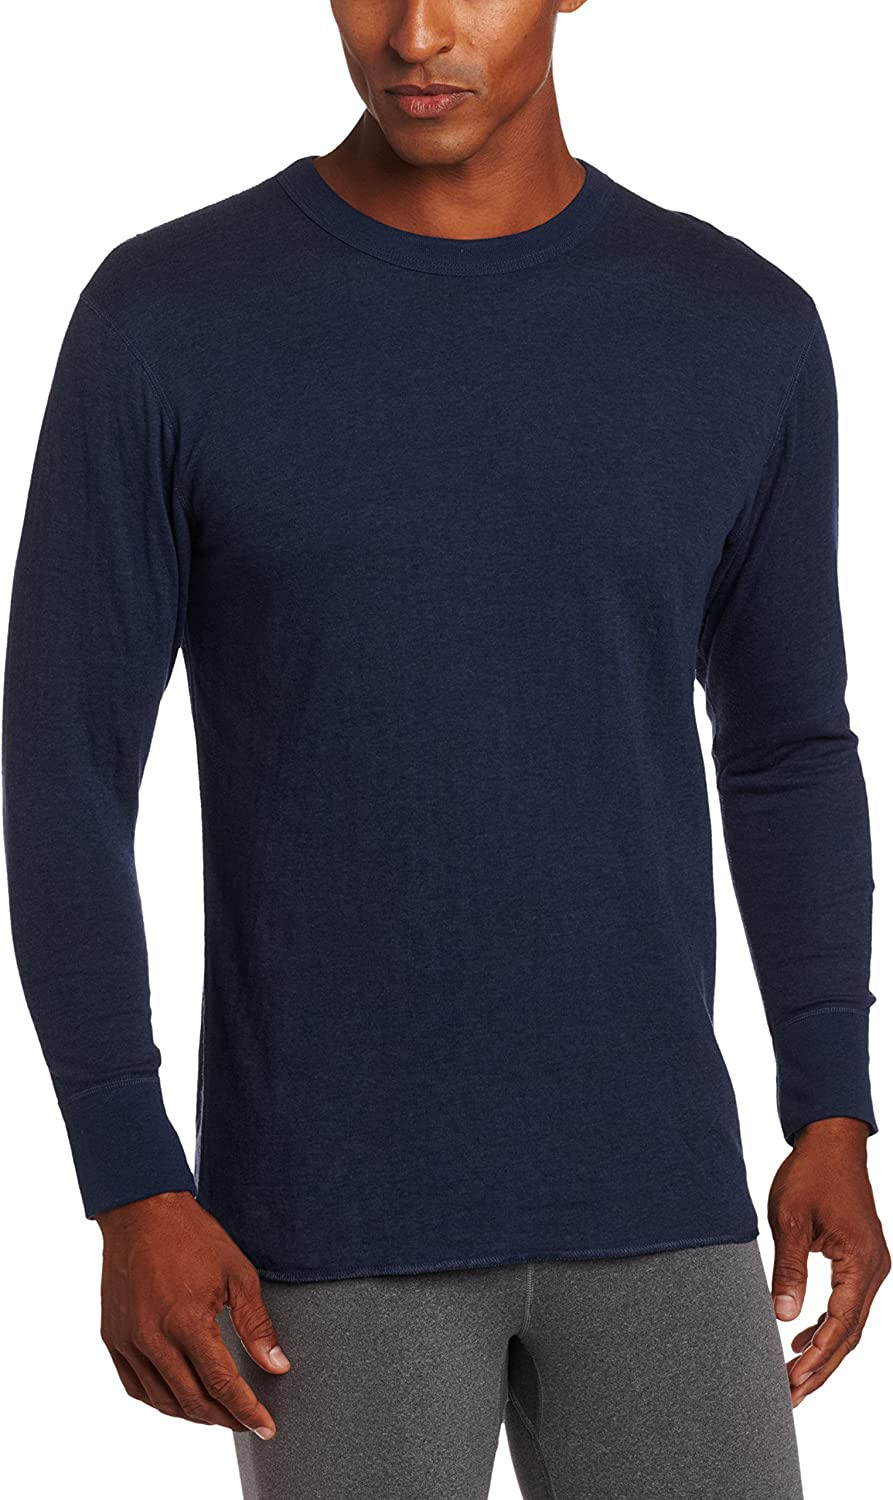 Duofold Men's Mid Weight Crew Neck Thermal Sleepwear